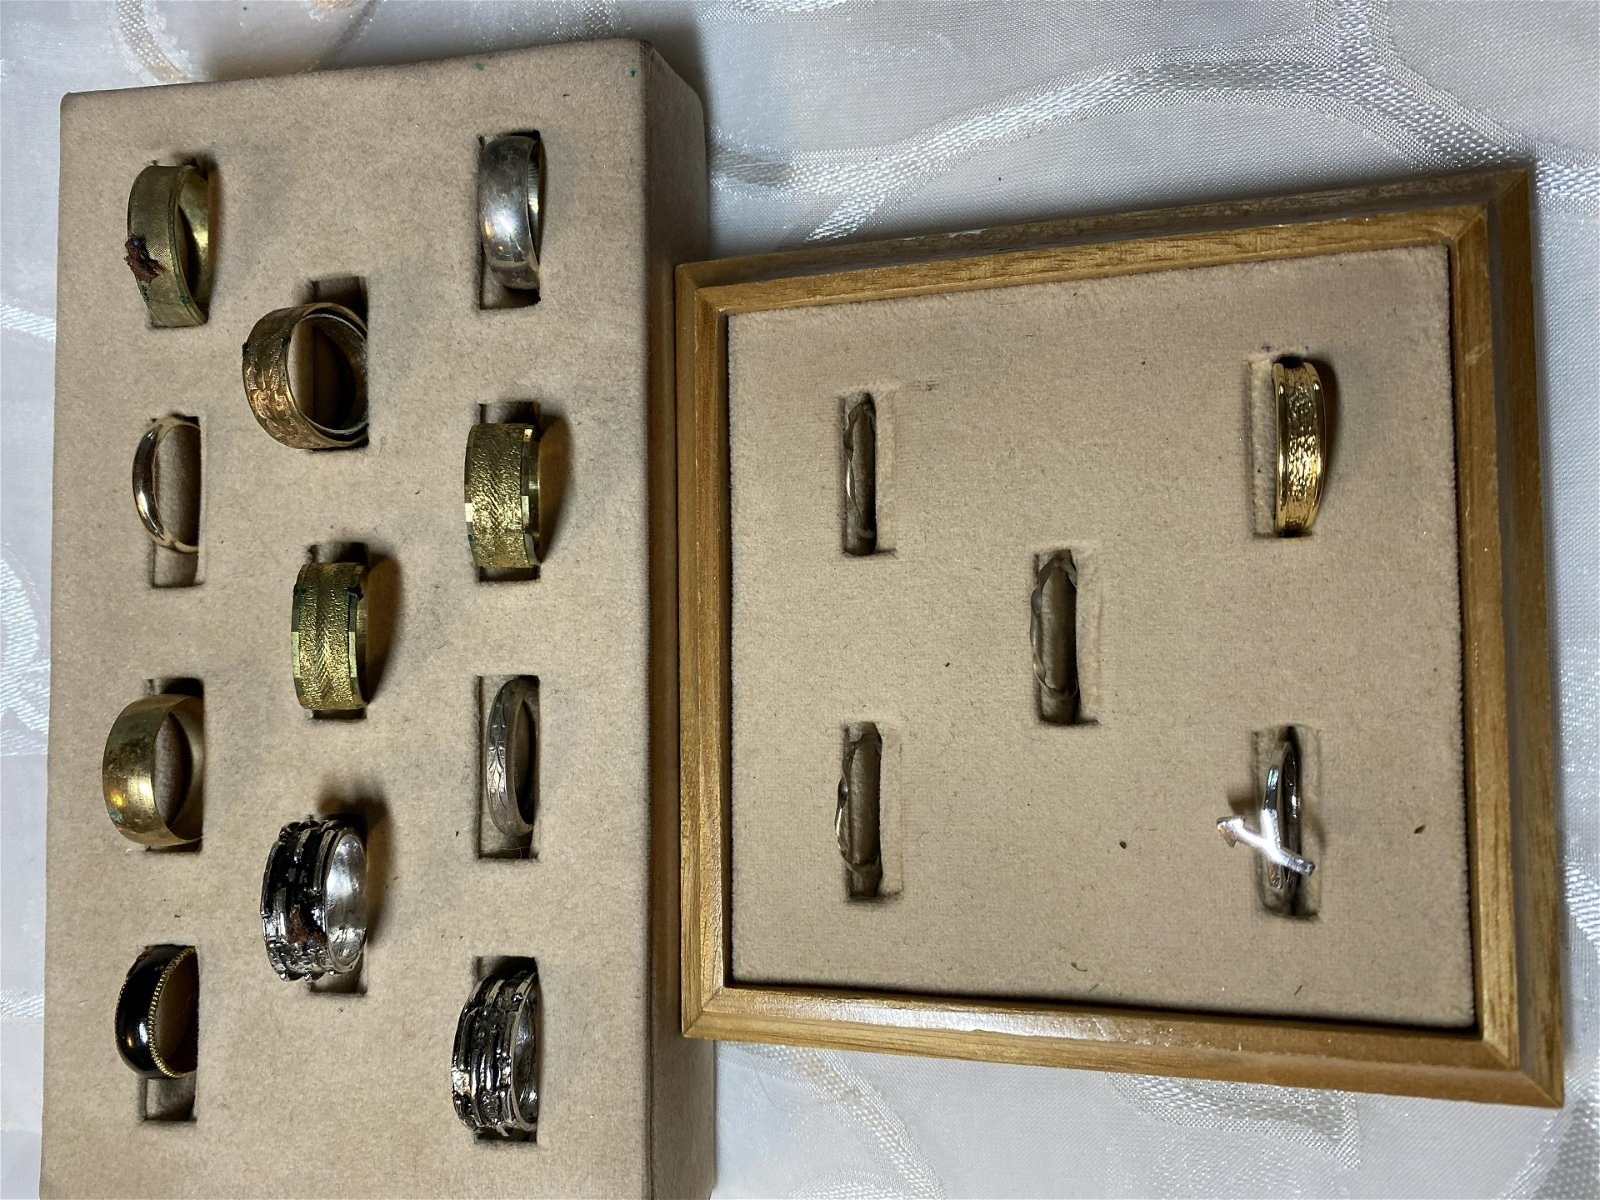 LOT OF (16) VINTAGE GOLD/SILVER RINGS FROM A JEWELRY